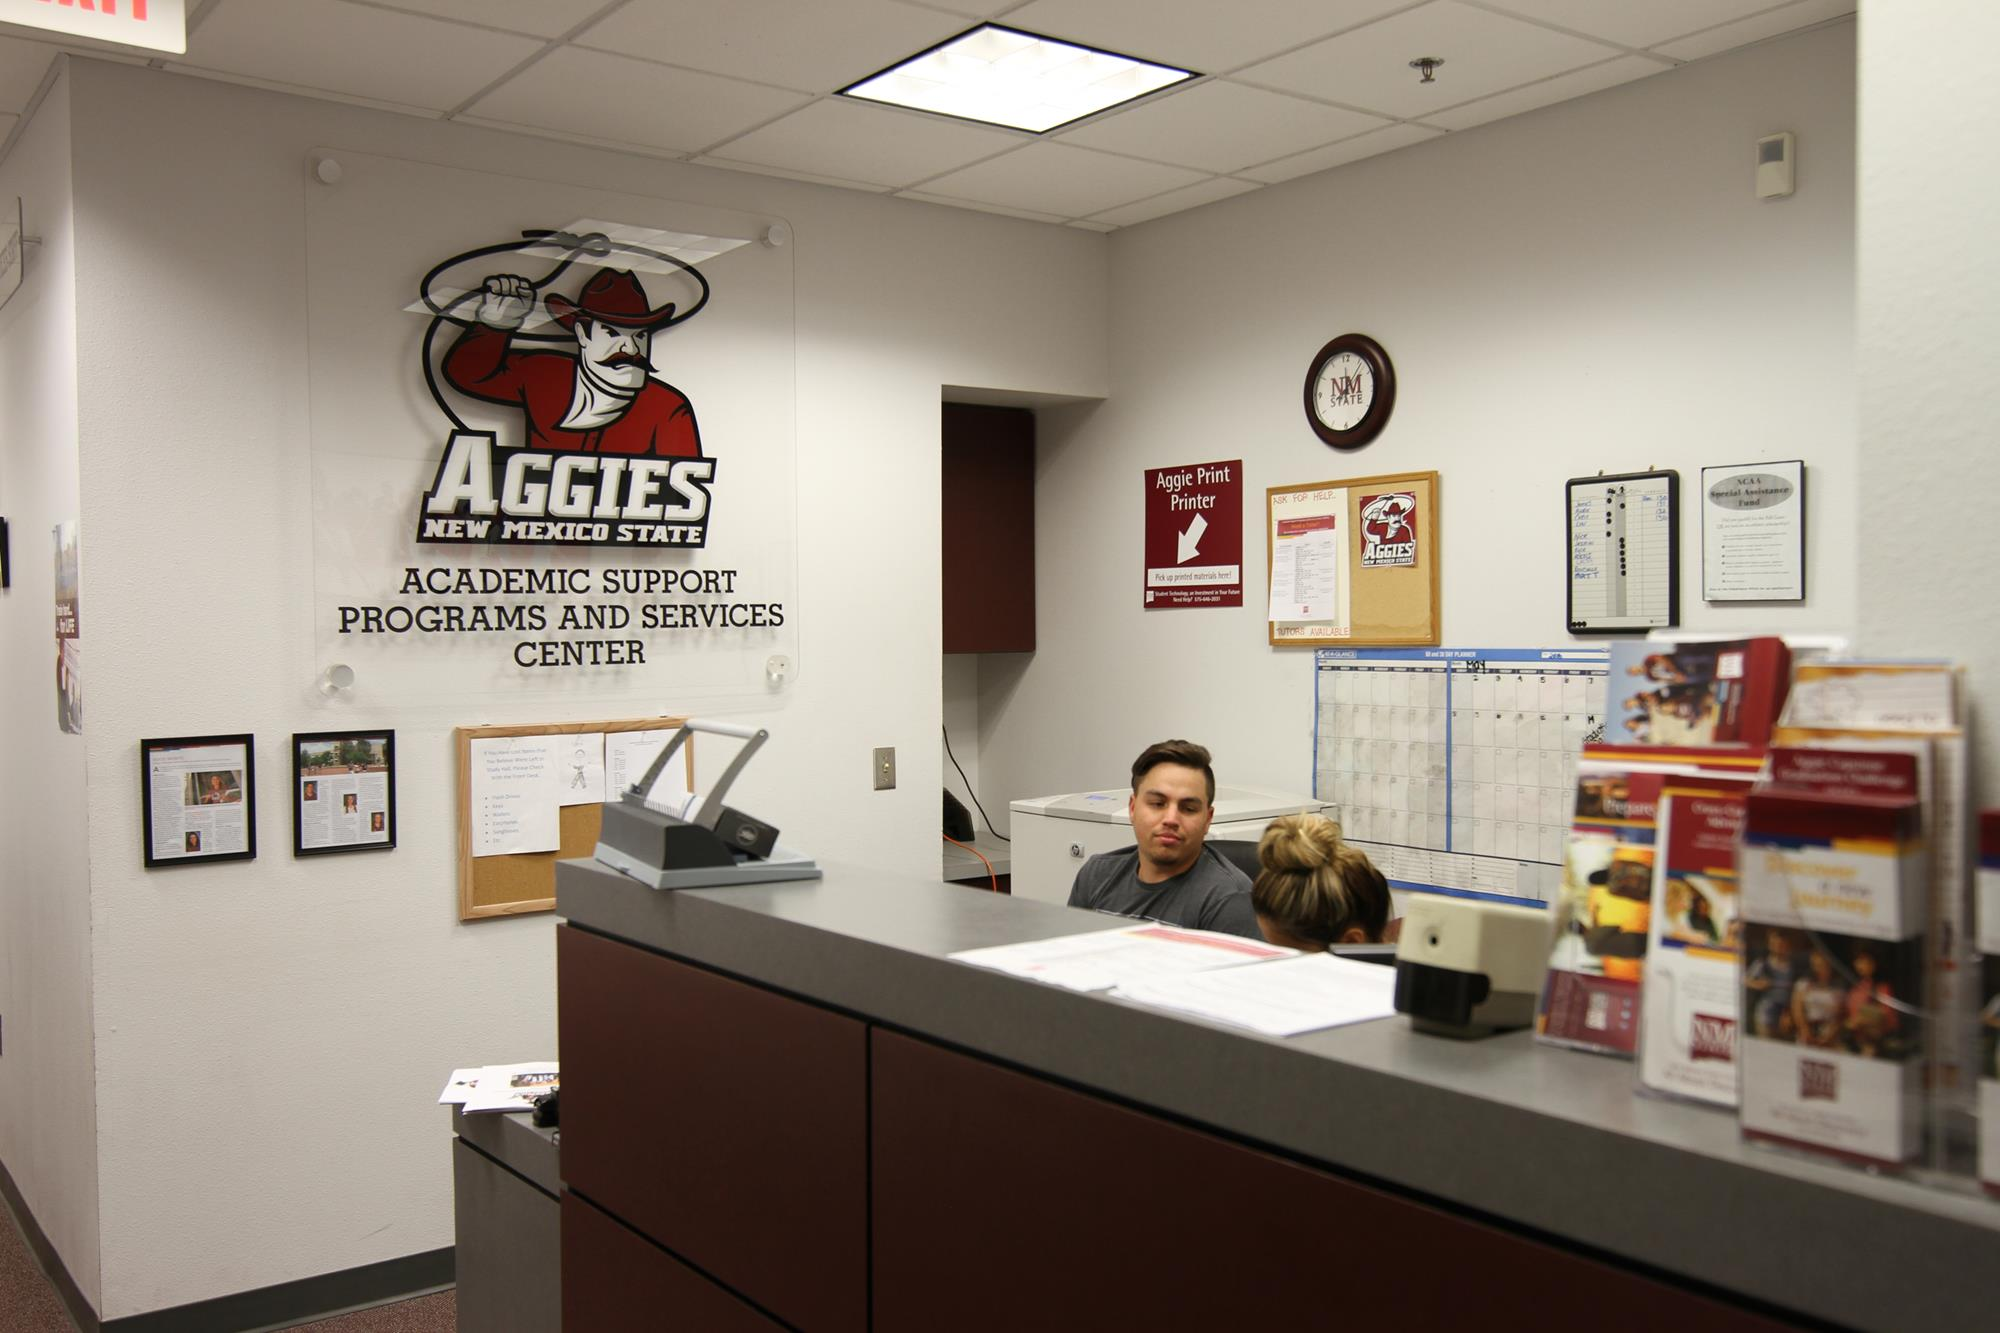 Academic Center Facilities New Mexico State University Athletics